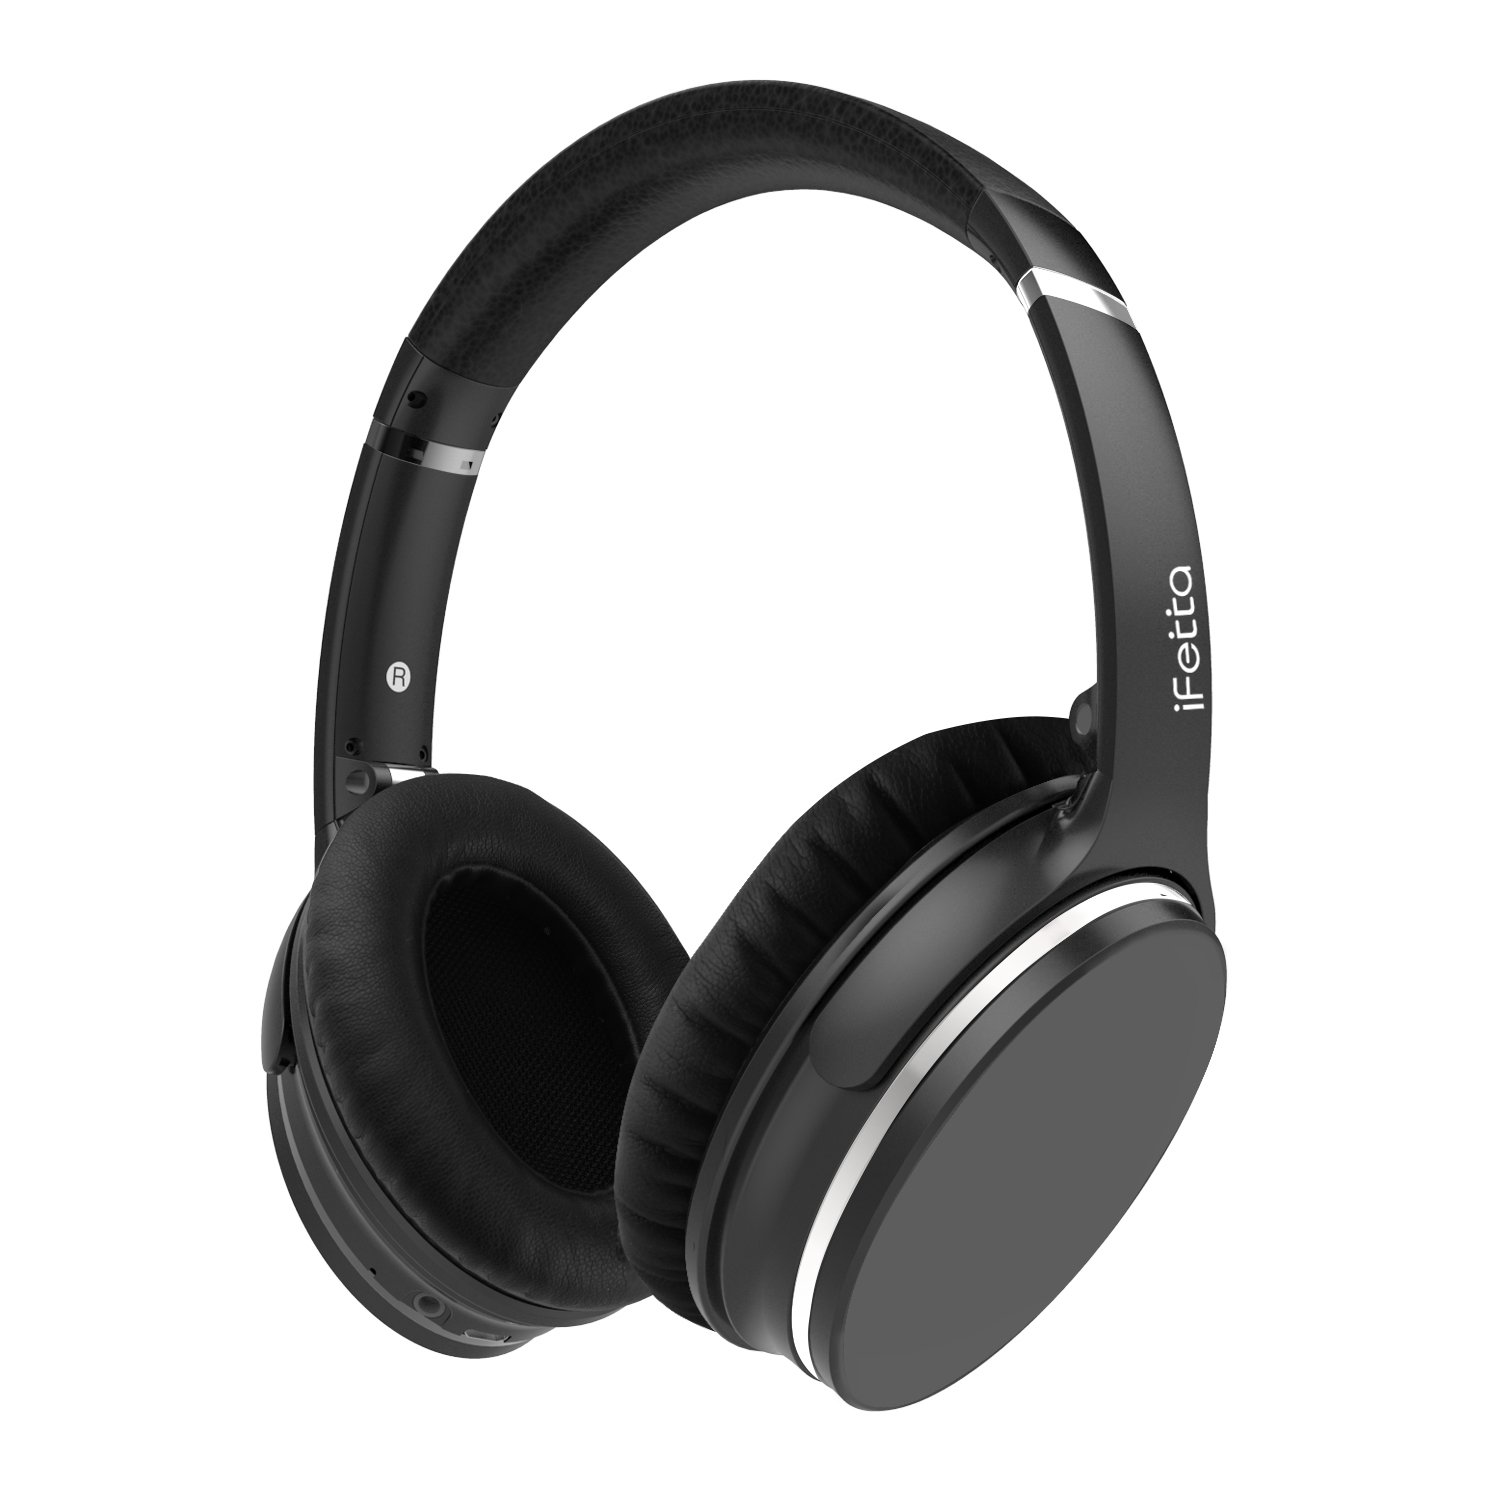 Active Noise Cancelling Headphones, Ifecco Bluetooth HiFi Over-ear Headsets with Mic and Volume Control Support 3.5mm Jack and Bluetooth Devices, Black with case